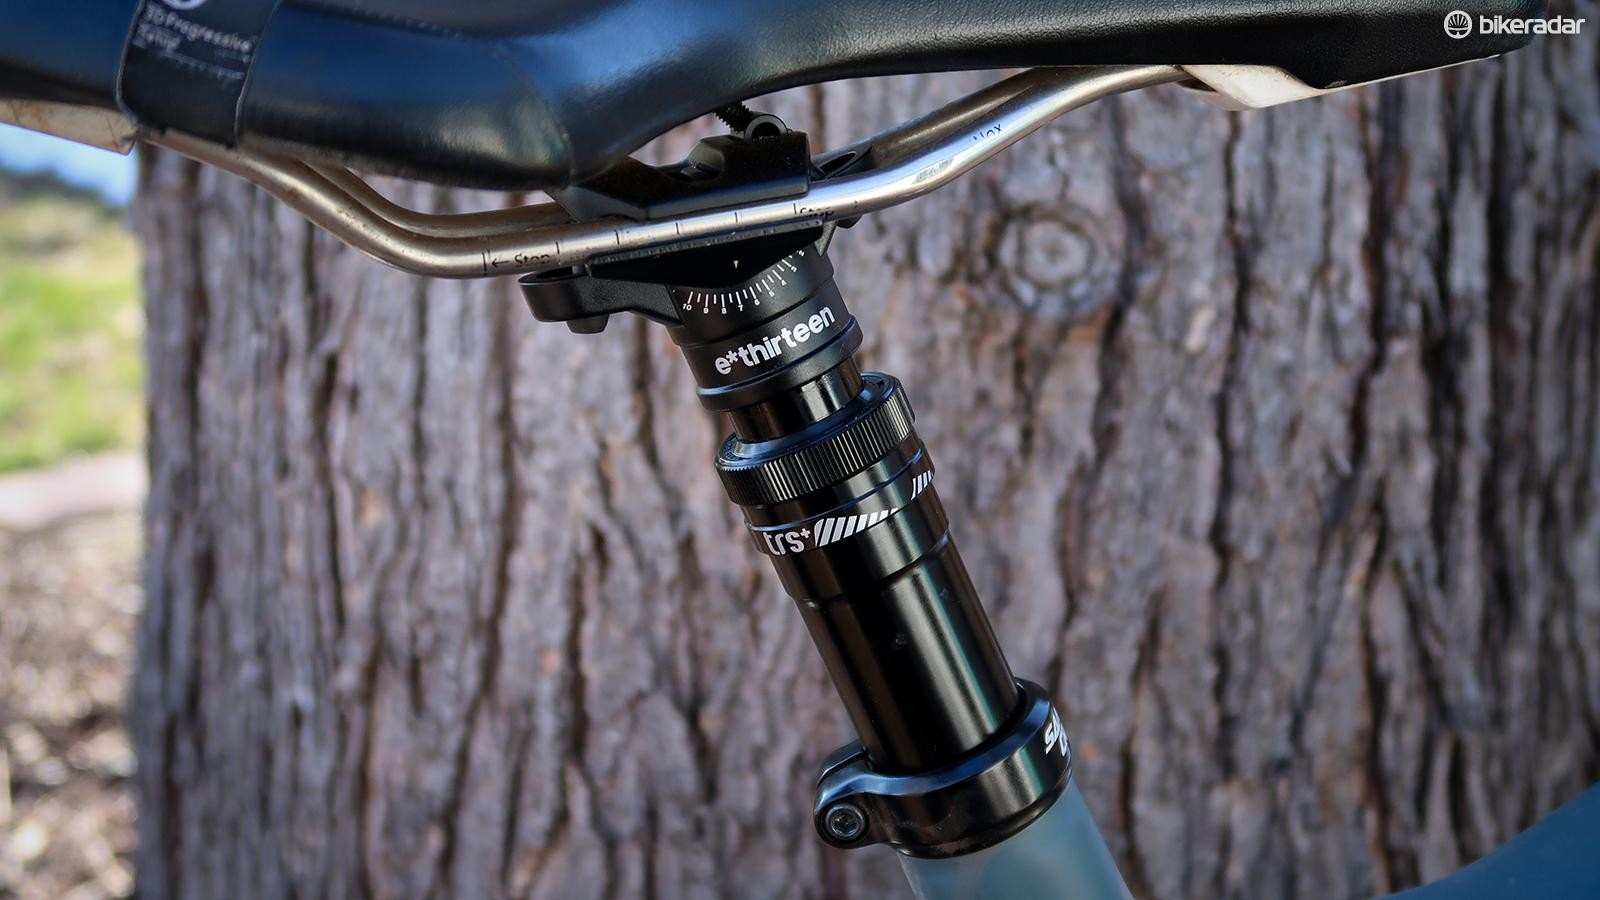 The e*thirteen TRS+ dropper seatpost is affordable, user-serviceable and thus far has proven reliable